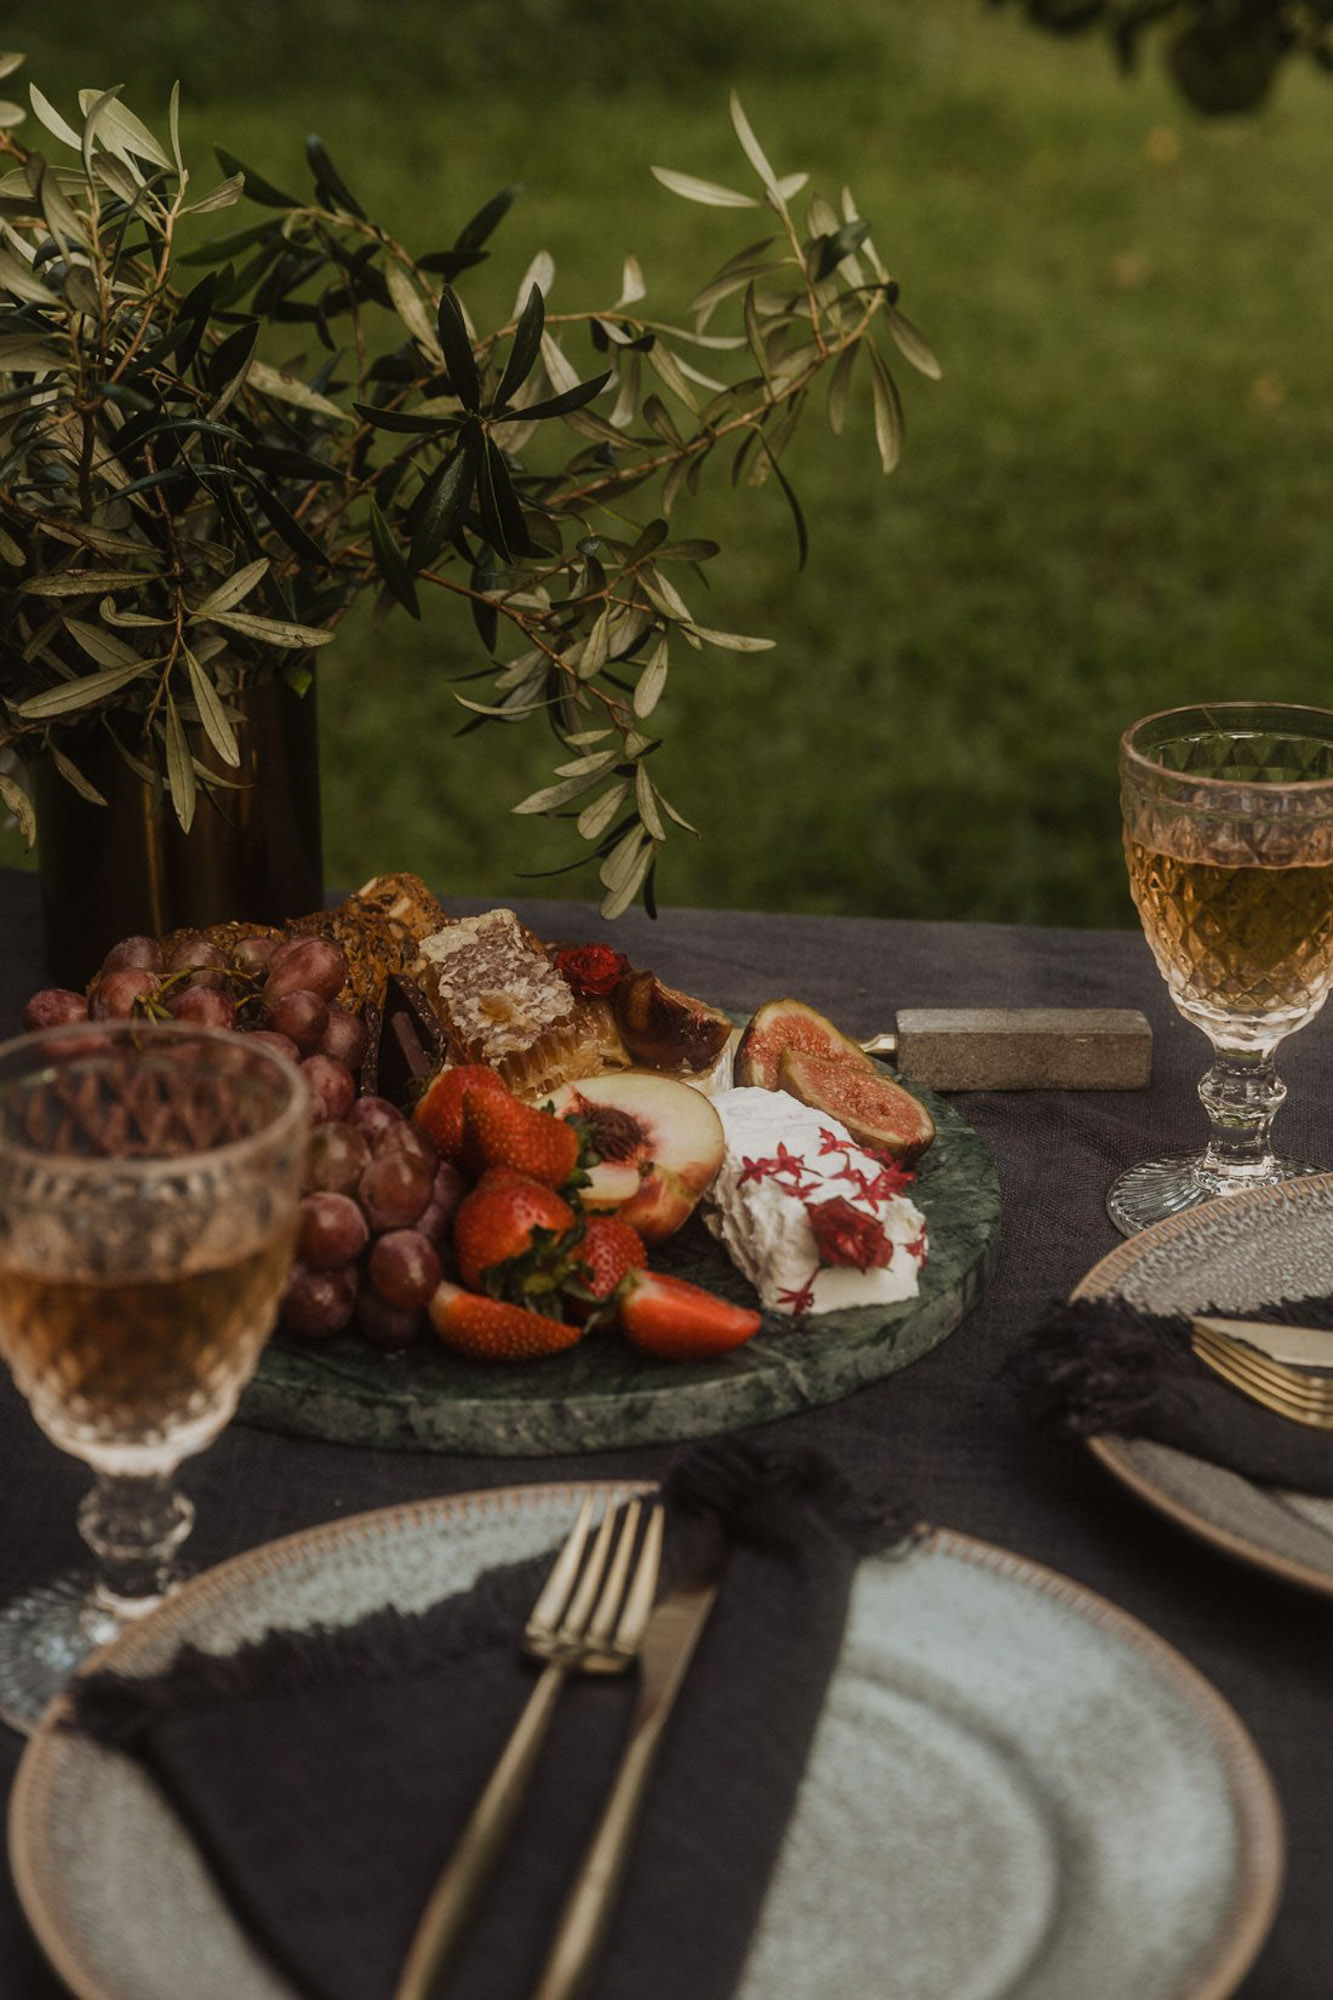 Styled Photshoot - Orchard Picnic Cairns  - Event Styling and Catering by The Collection Co-4.jpg